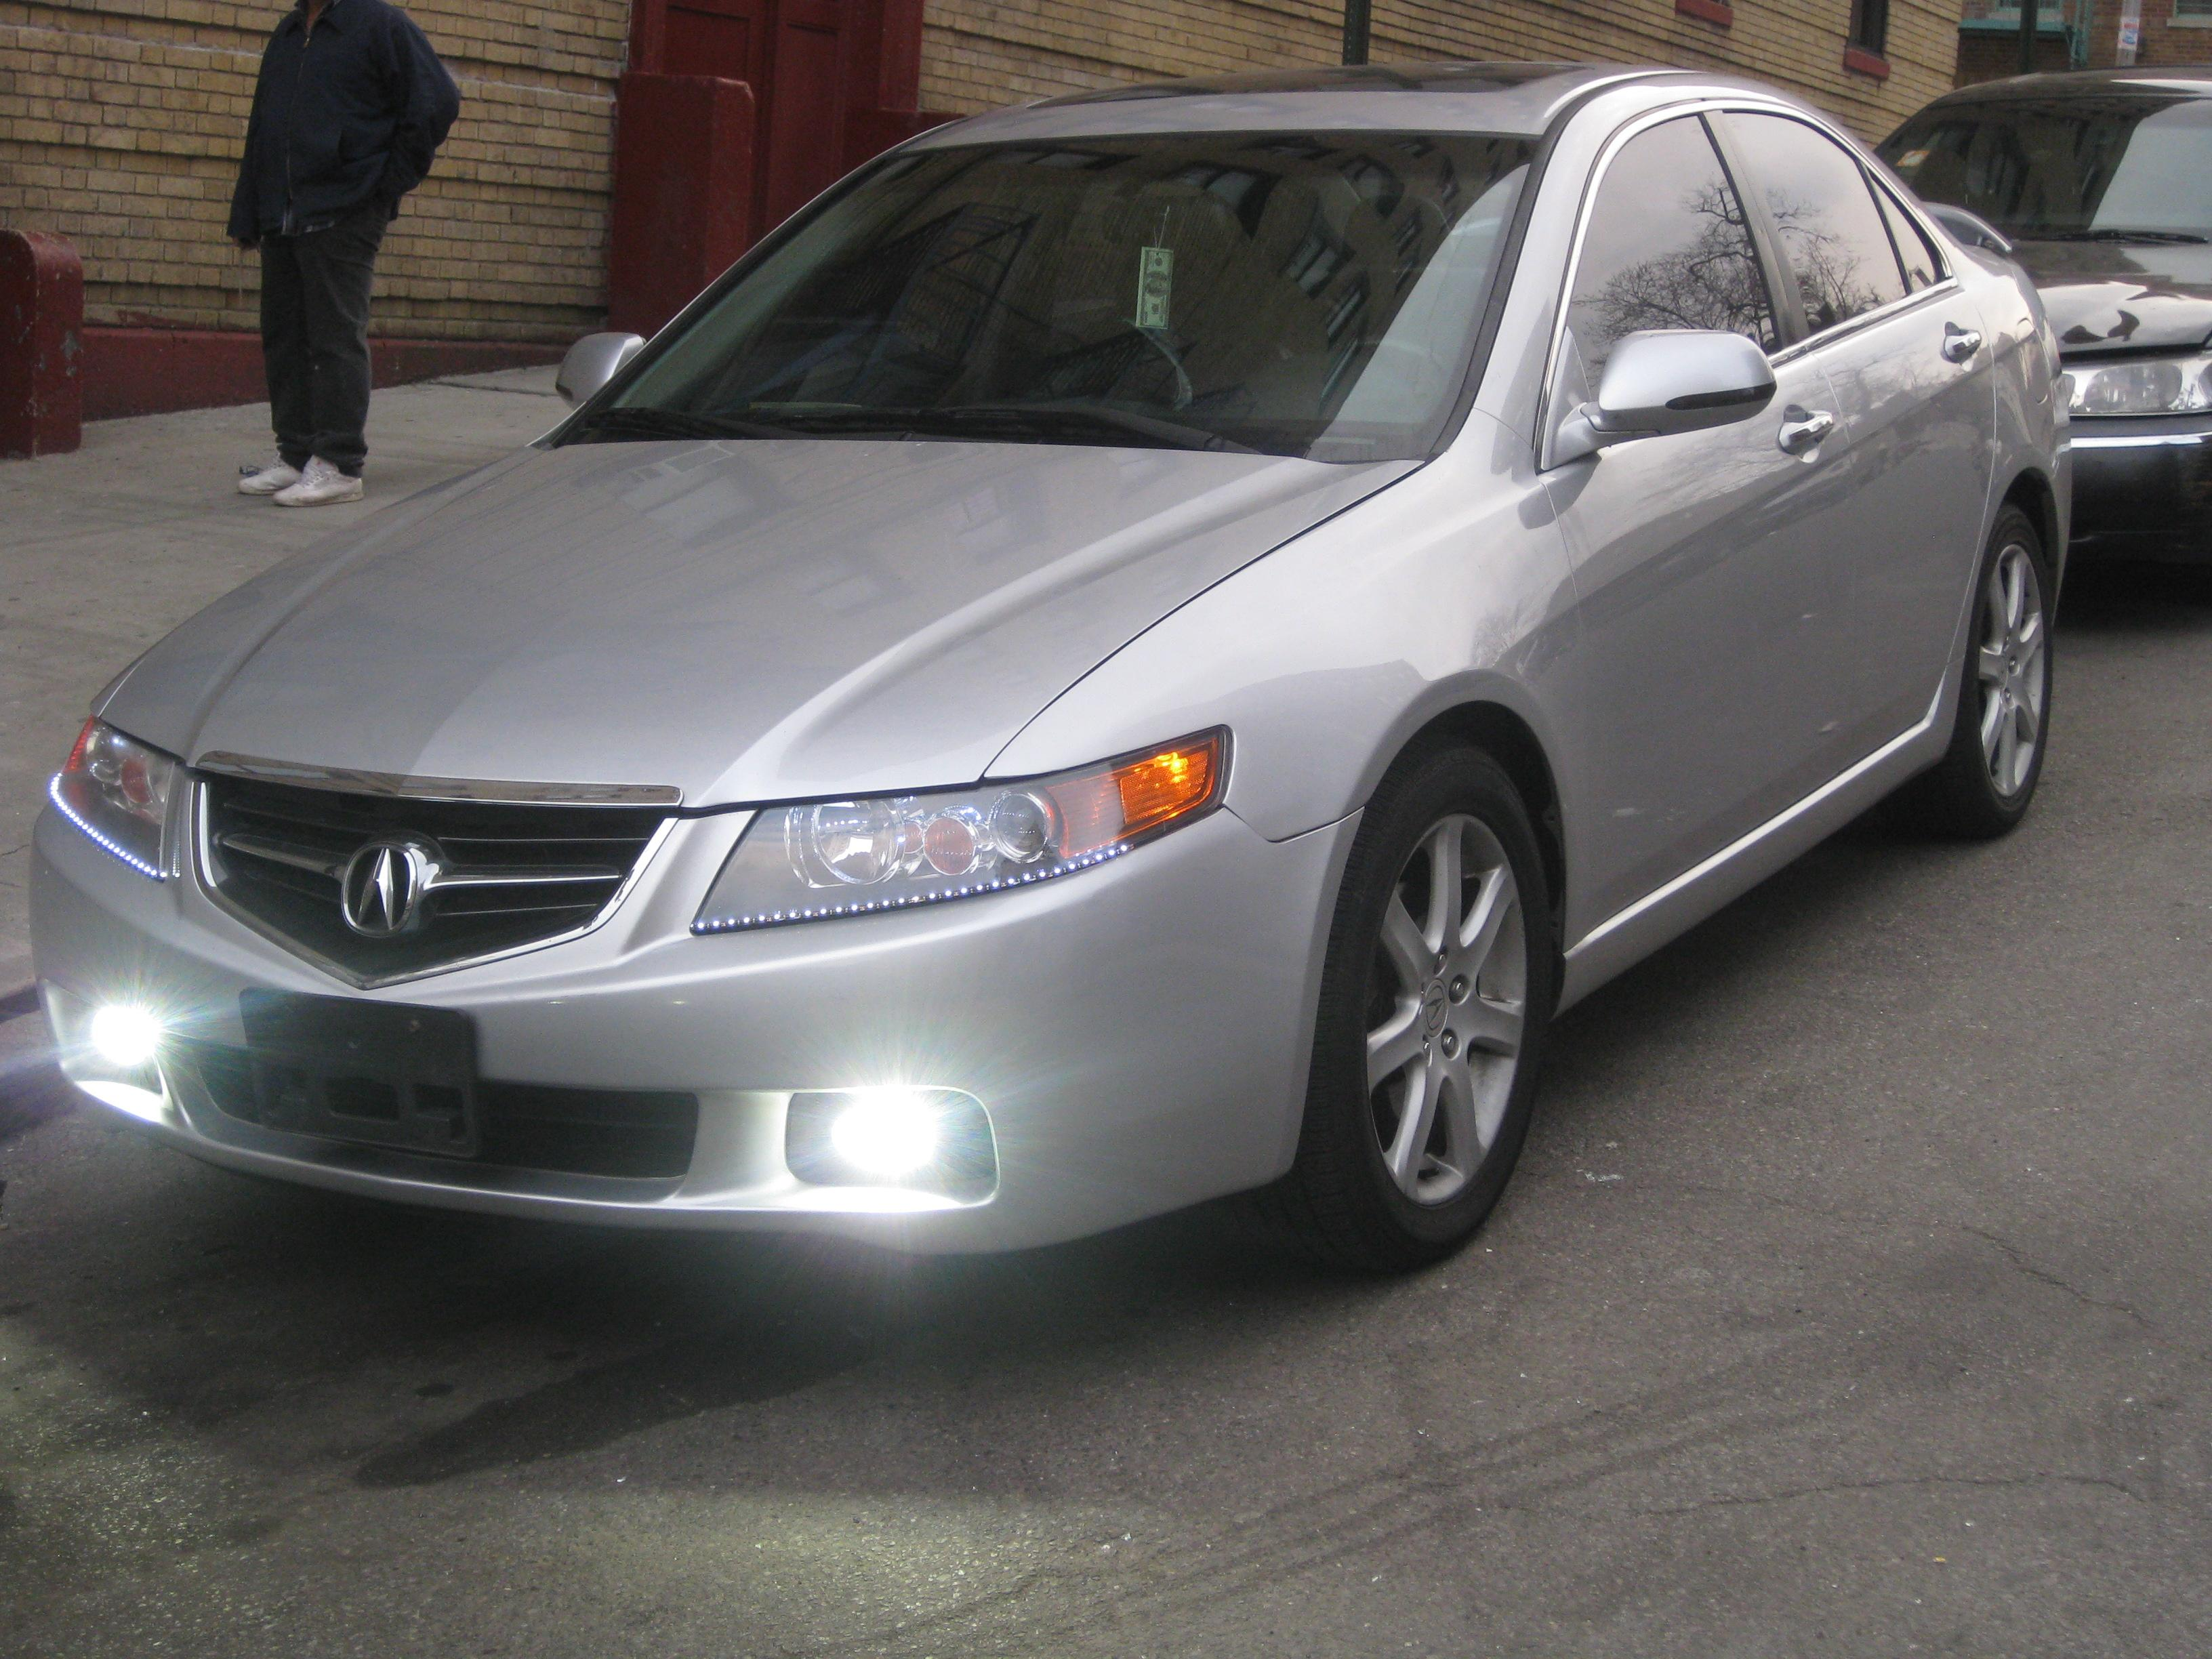 village cars sale tsx location fs on forums co acura black greenwood obo member